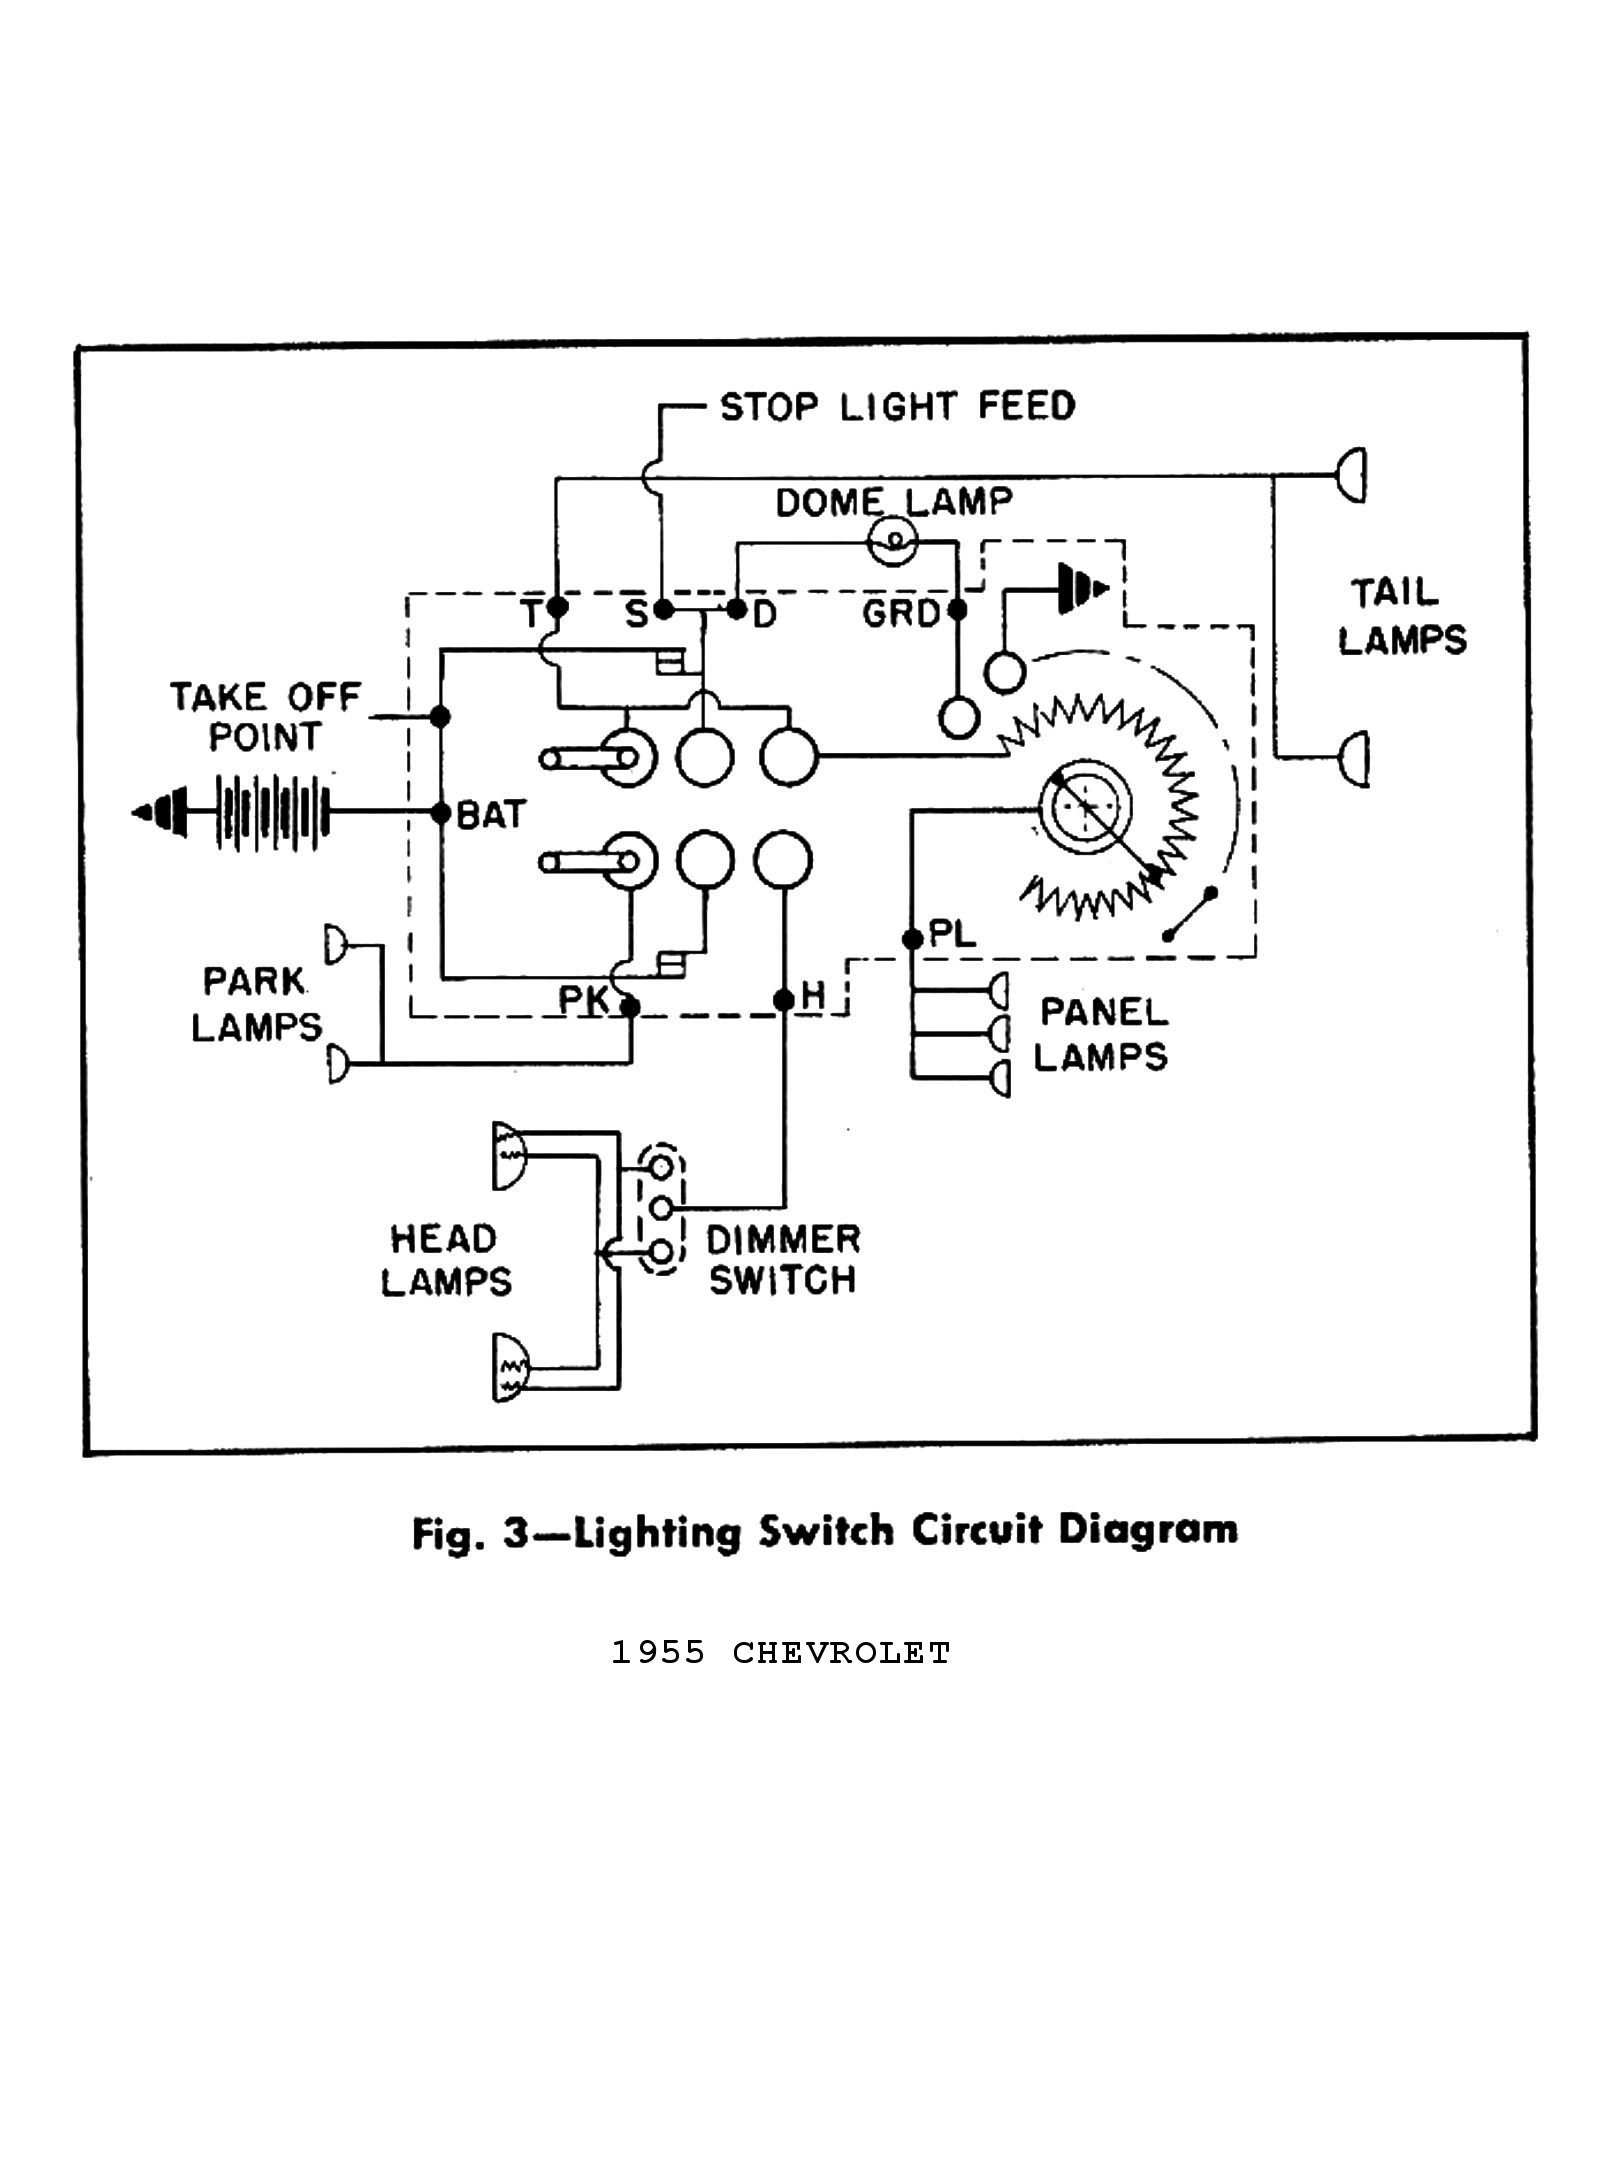 55ctsm1203 1955 chevy wiring diagram 1955 pontiac wiring diagram \u2022 free chevrolet headlight switch wiring diagram at soozxer.org